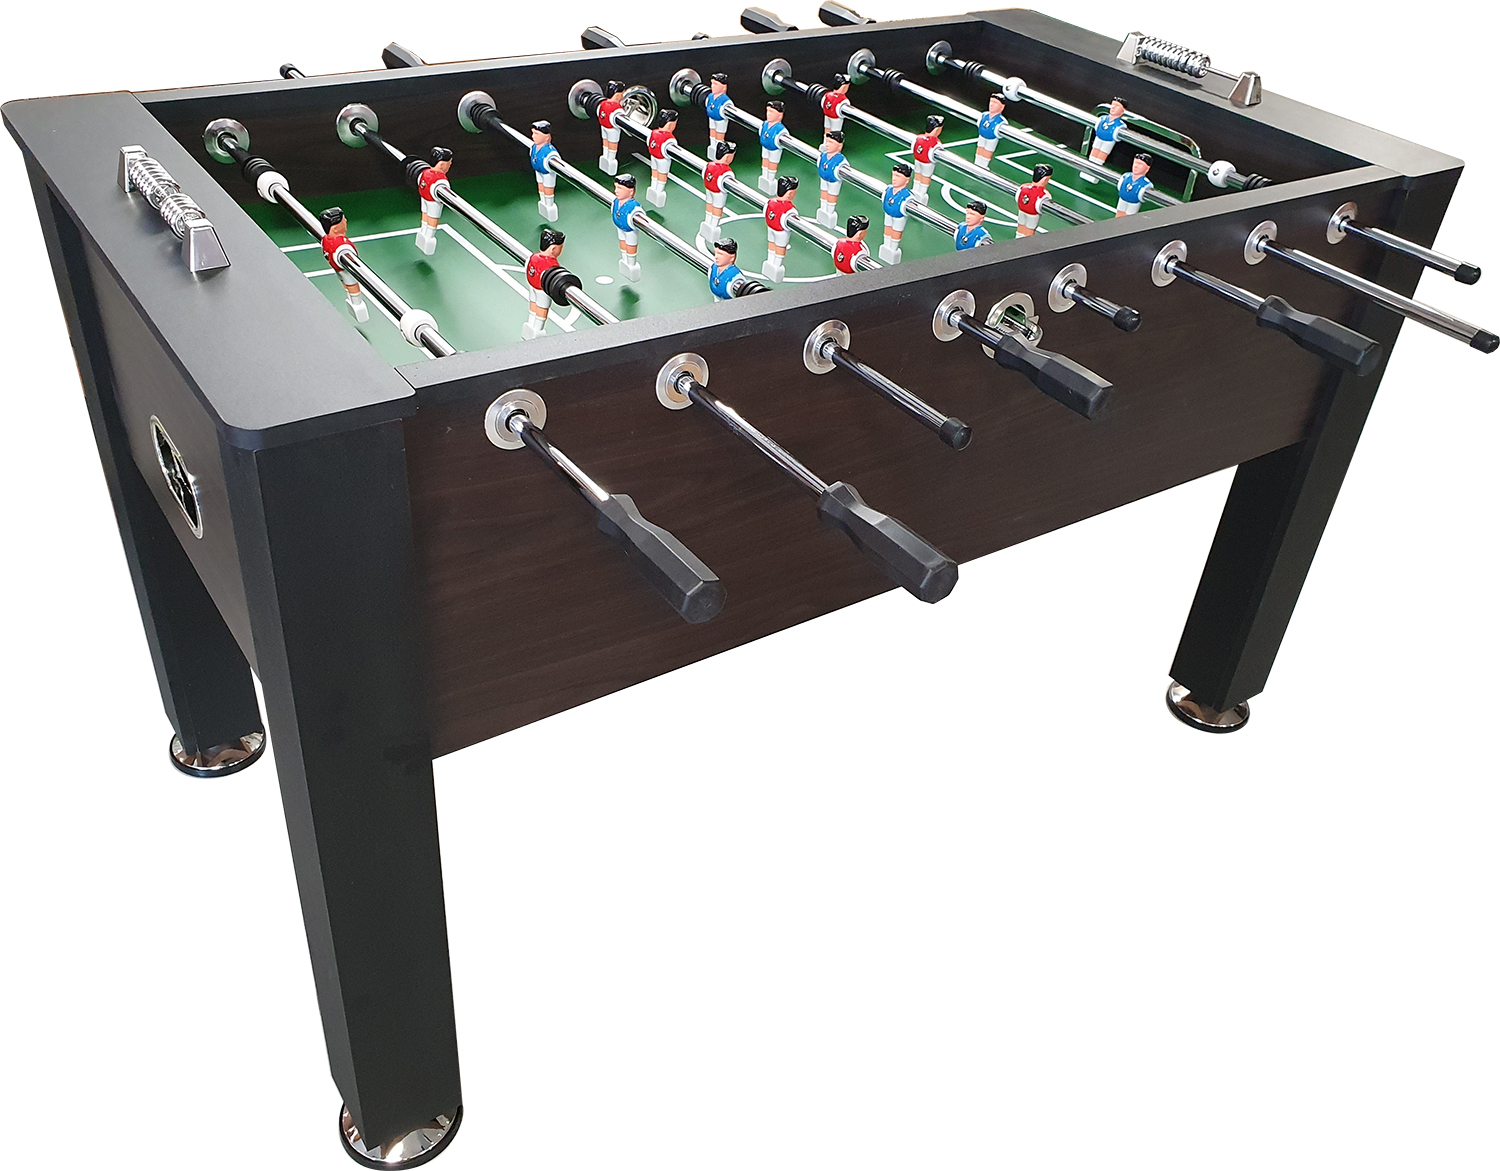 VC0198: Voetbaltafel TopTable Victory #1